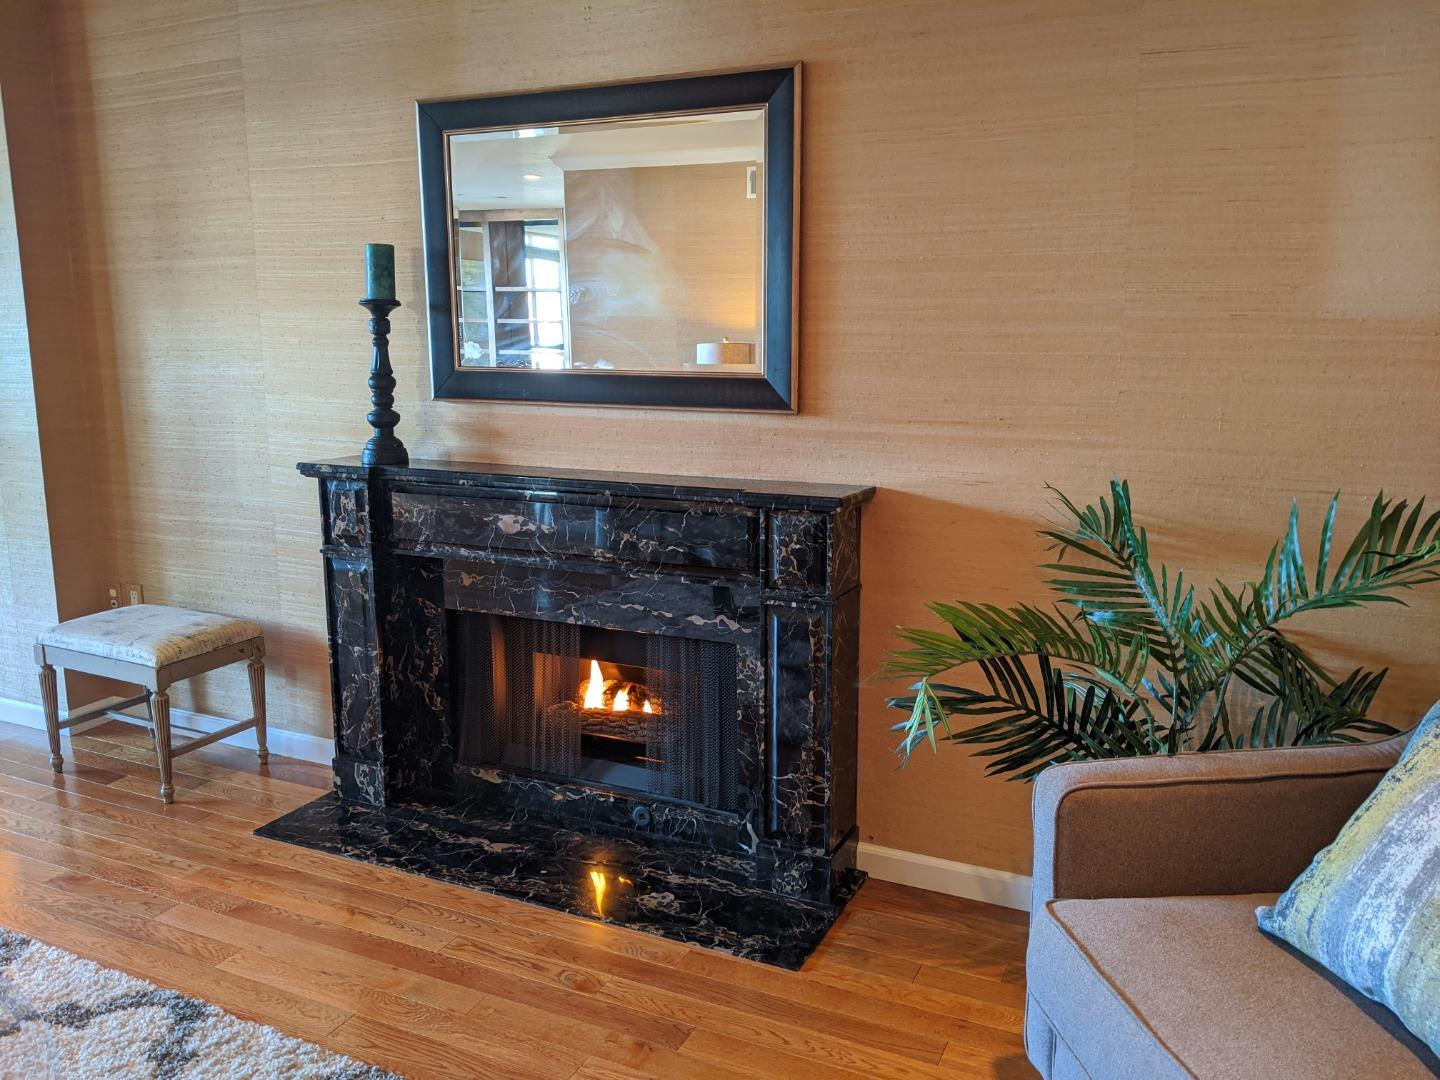 Want To Install A Fireplace For Your Burlingame Home? Check This Guide!